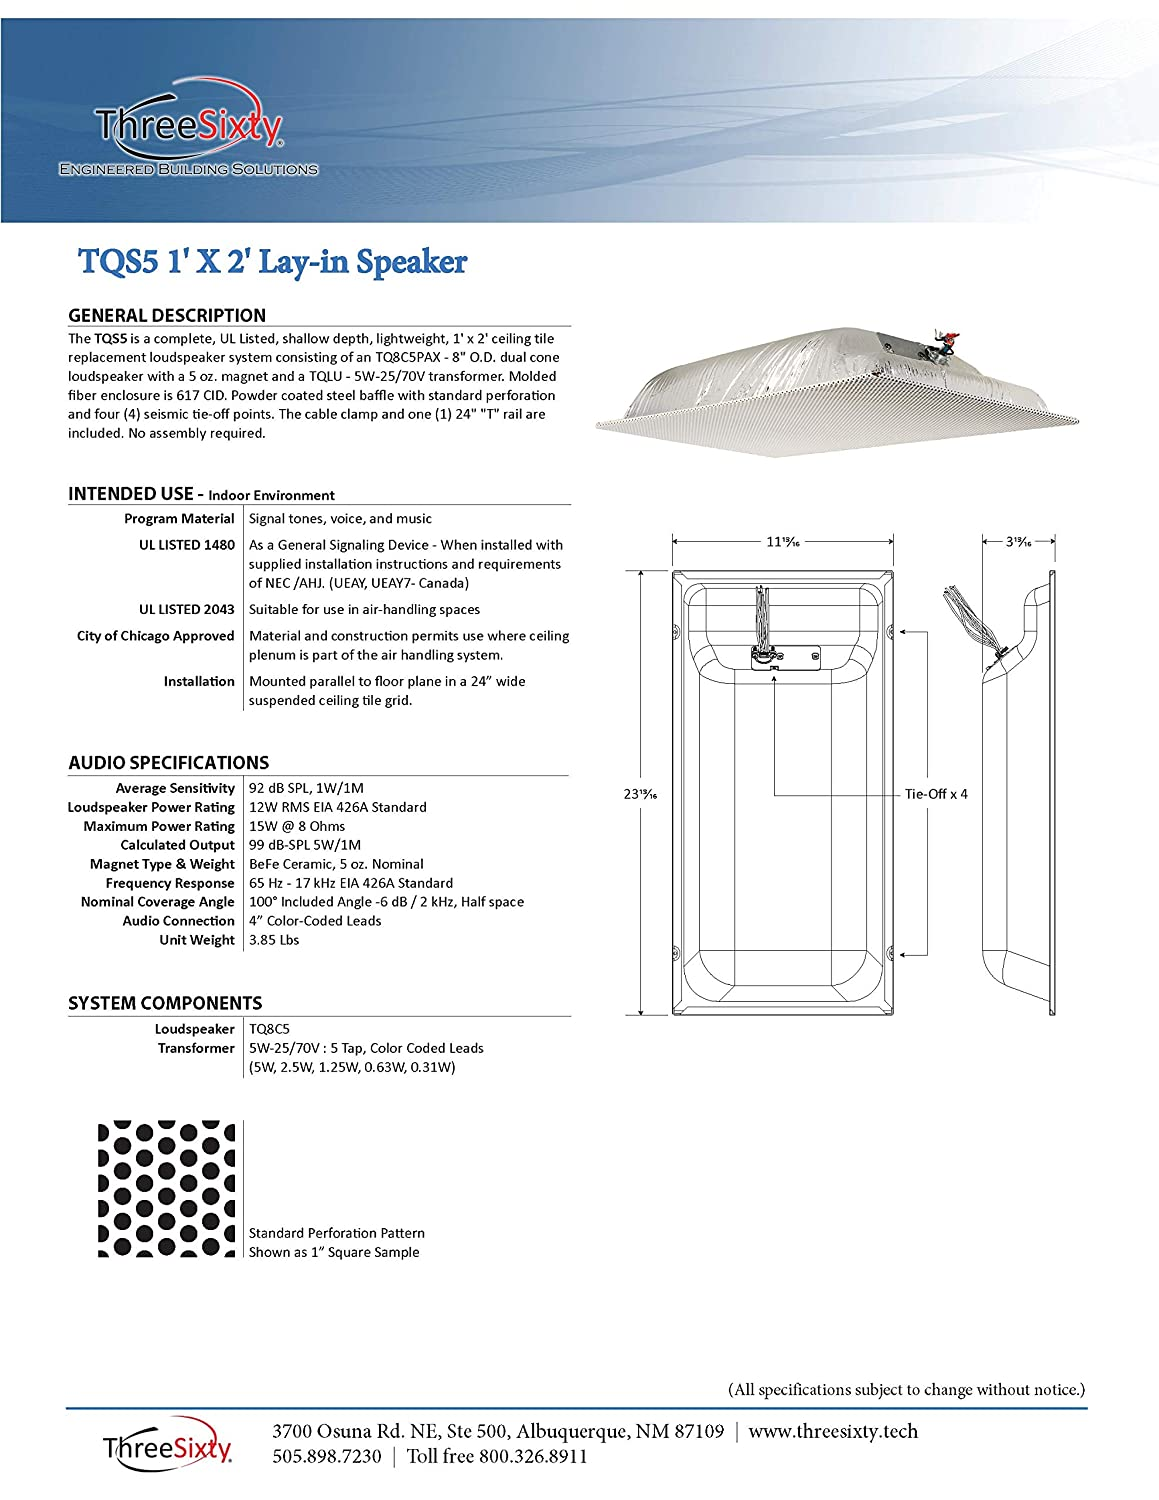 Amazon.com: ThreeSixty TQS5 1 X 2 Lay-in Ceiling Speaker 25/70 Volt on ceiling speaker dimensions, ceiling speaker hook up, surround sound installation diagram, ceiling speakers baffle, ceiling speaker accessories, ceiling antenna, onq diagram, ceiling speaker installation, ceiling speaker connector, ceiling tile speakers, 70v speaker distribution diagram, multi room speaker diagram, outdoor speaker diagram, ceiling speaker parts, ceiling sensor diagram, ceiling speaker cable, speakers in parallel diagram, 70v system diagram, mission control wire diagram, ceiling speaker setup,